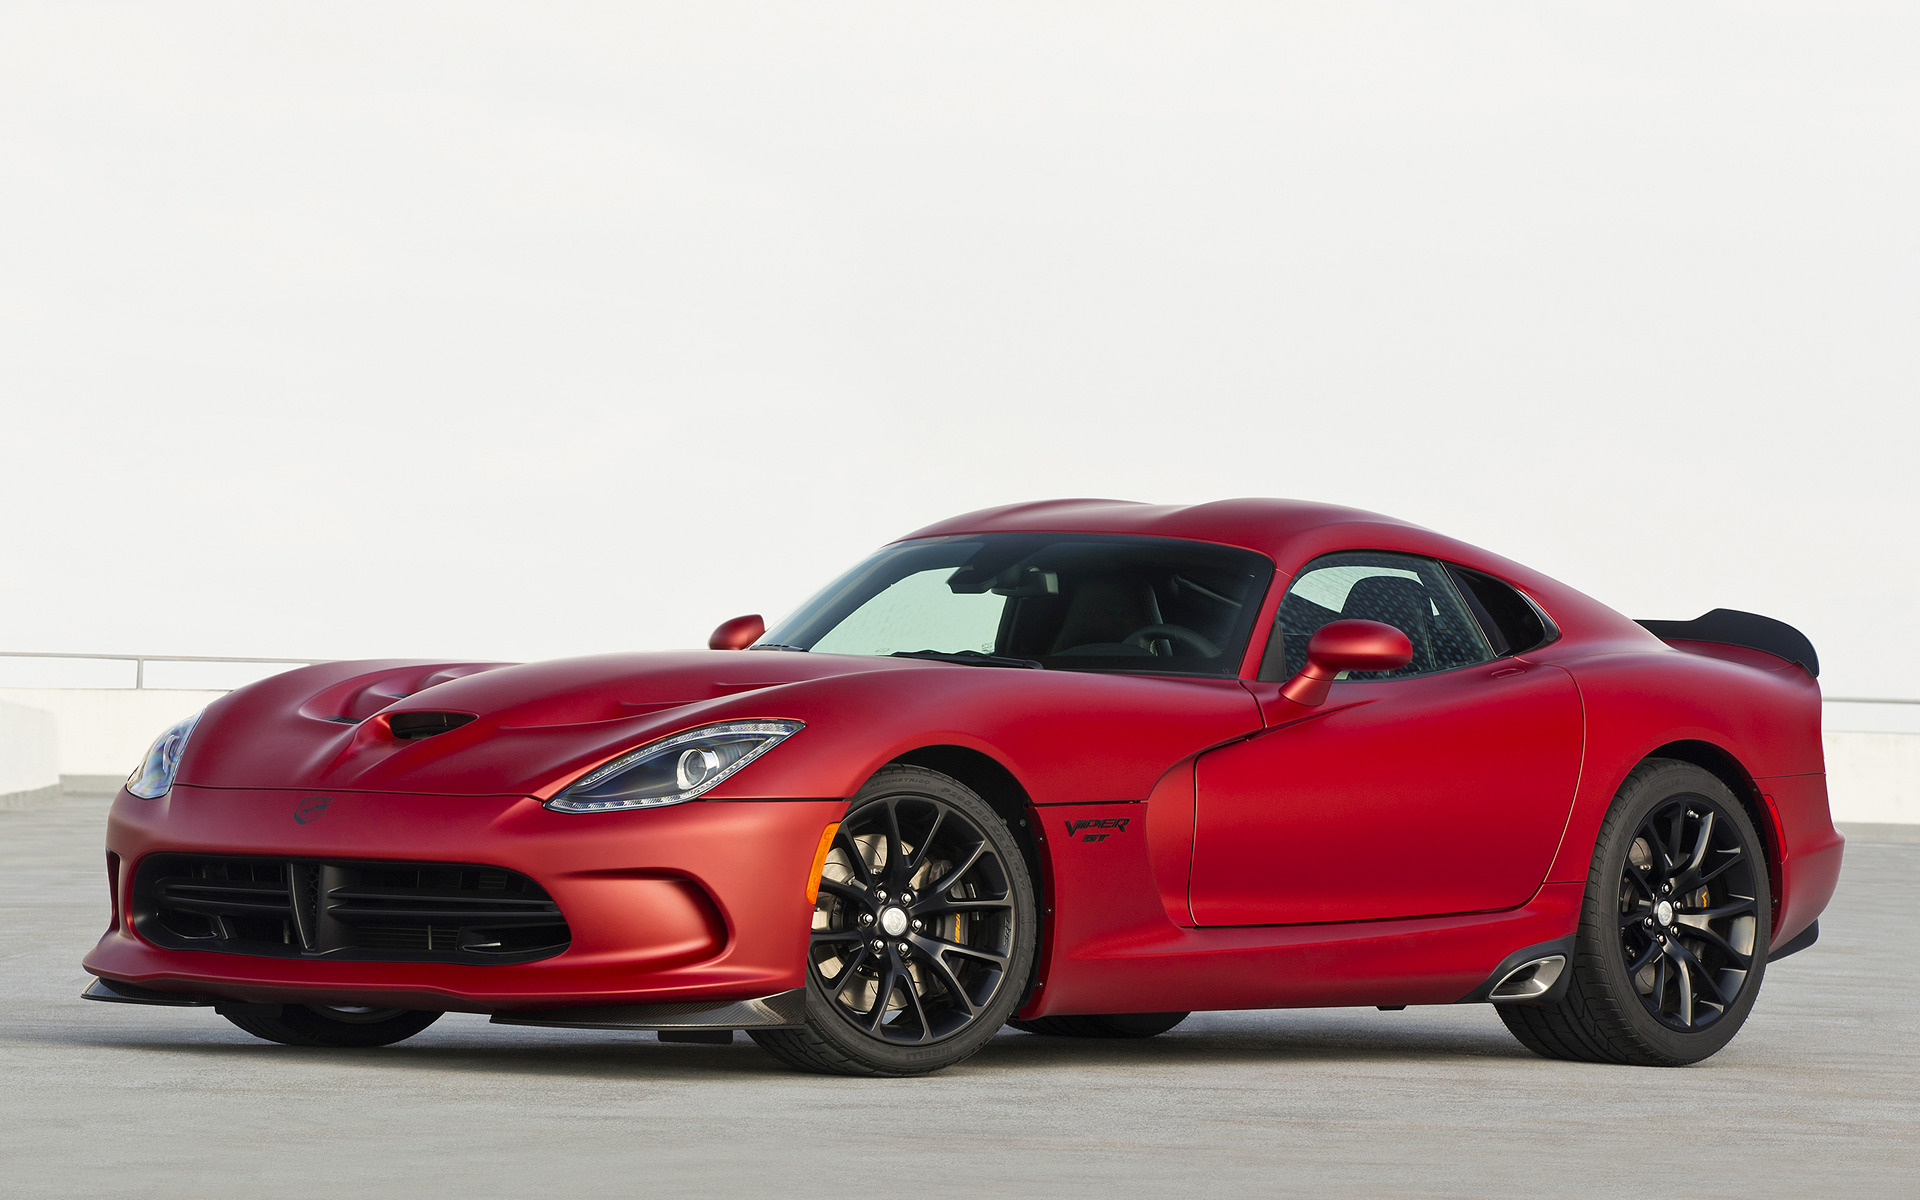 Viper Gts Cover With Wing Car Pictures - Car Canyon